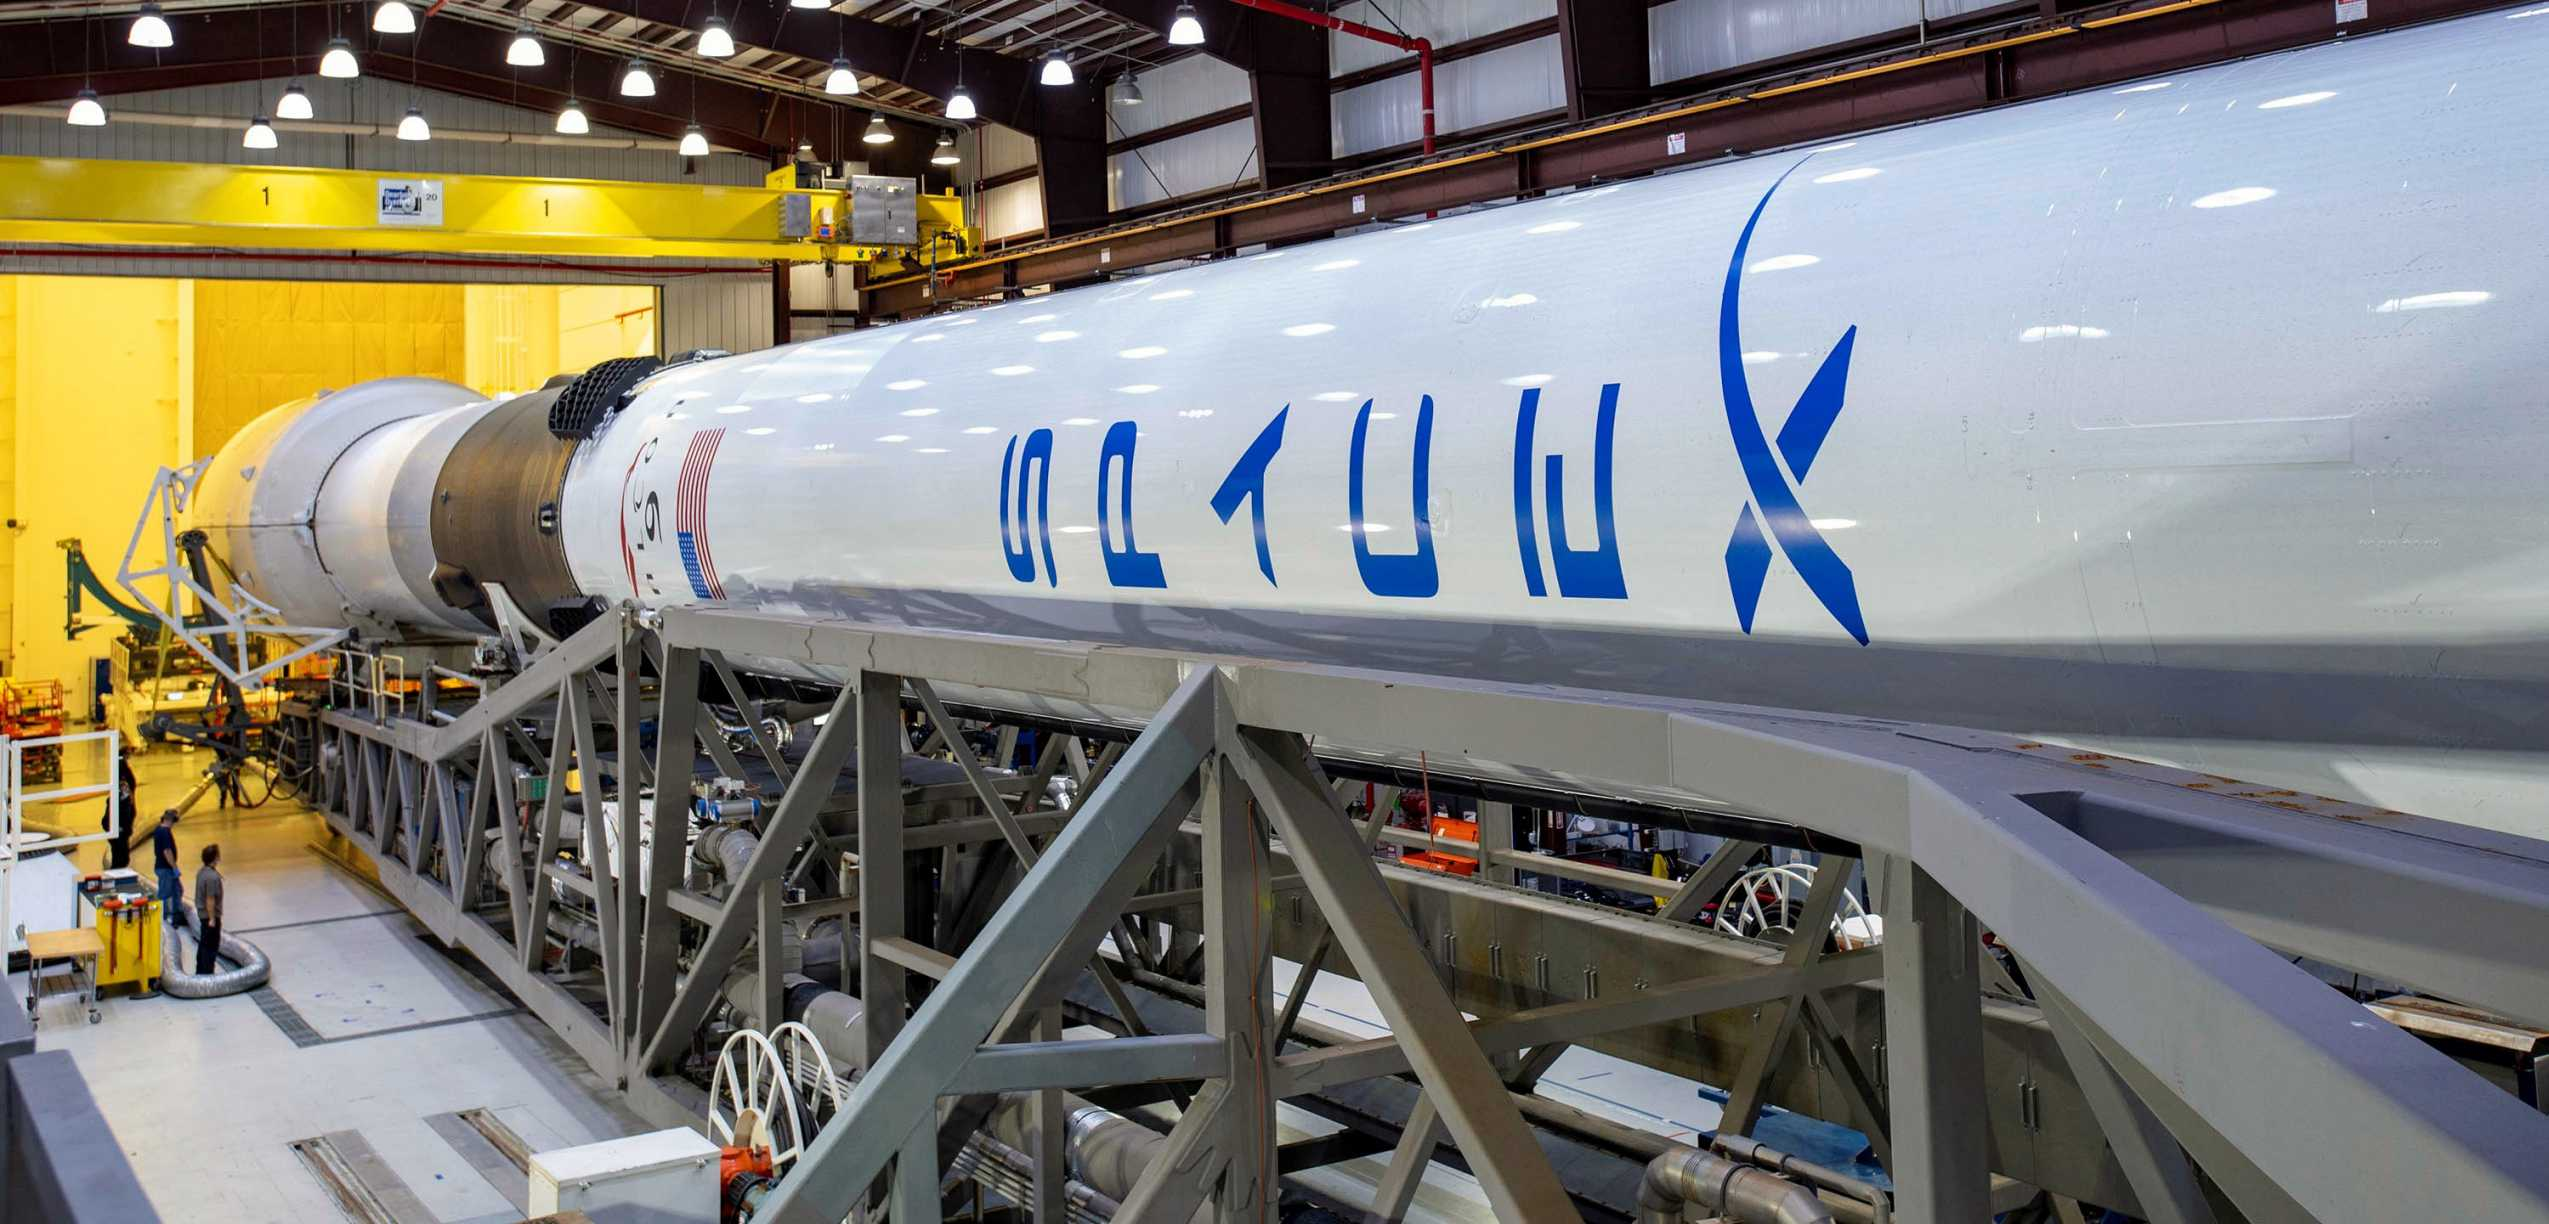 GPS III SV03 Falcon 9 B1060 LC-40 062930 (SpaceX) rollout 1 crop (c)